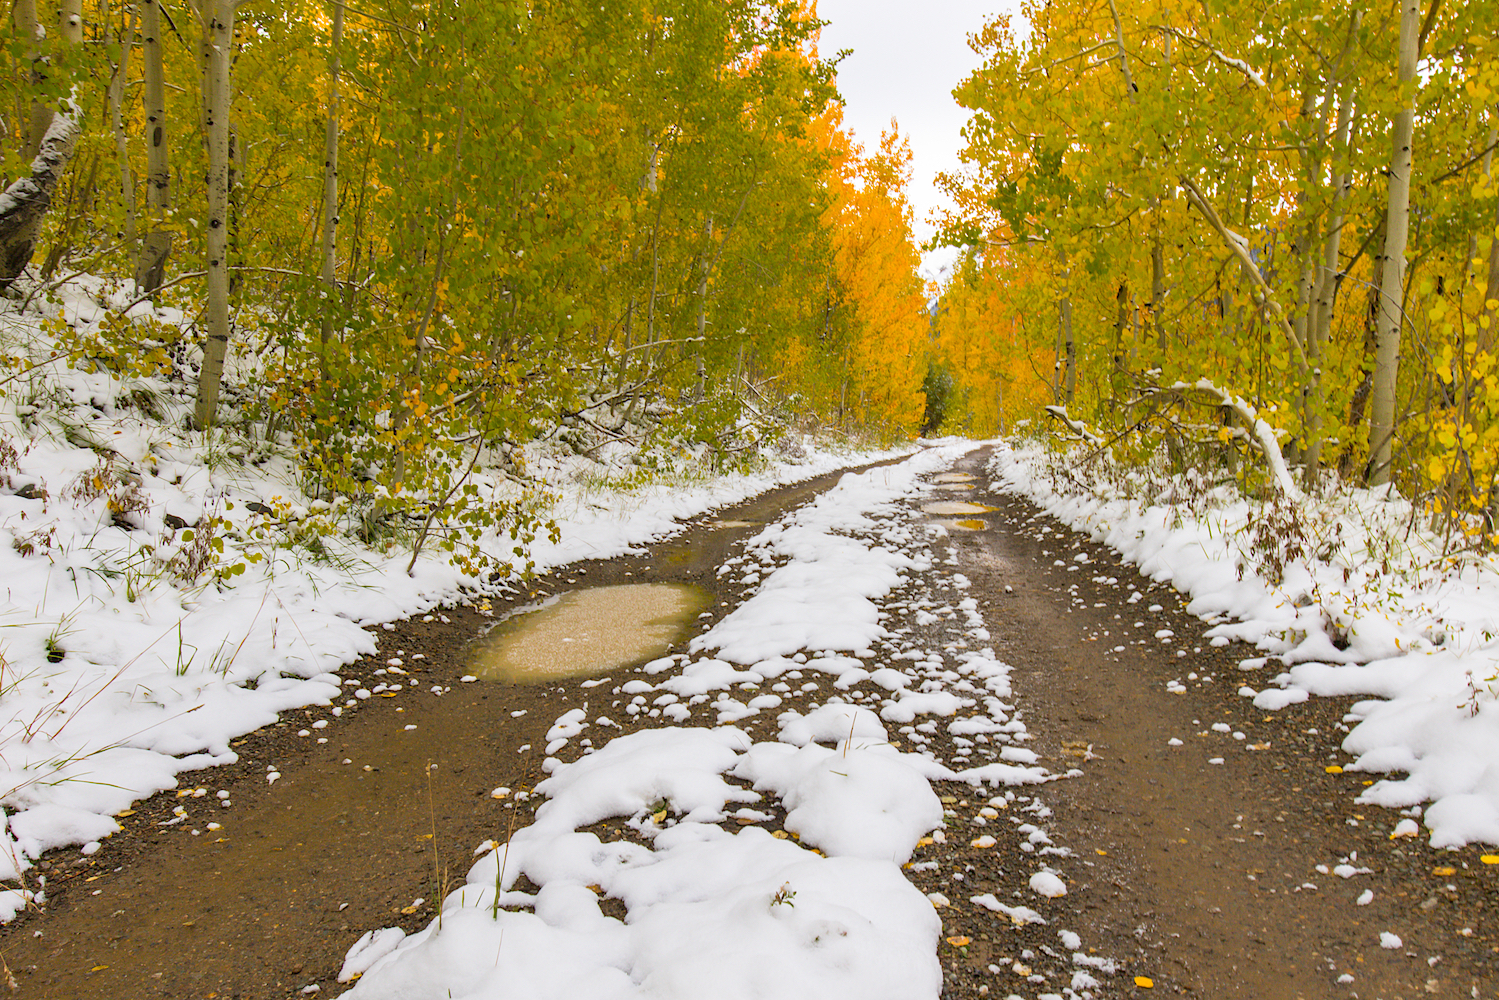 Snowy Fall Day, Image # 0679